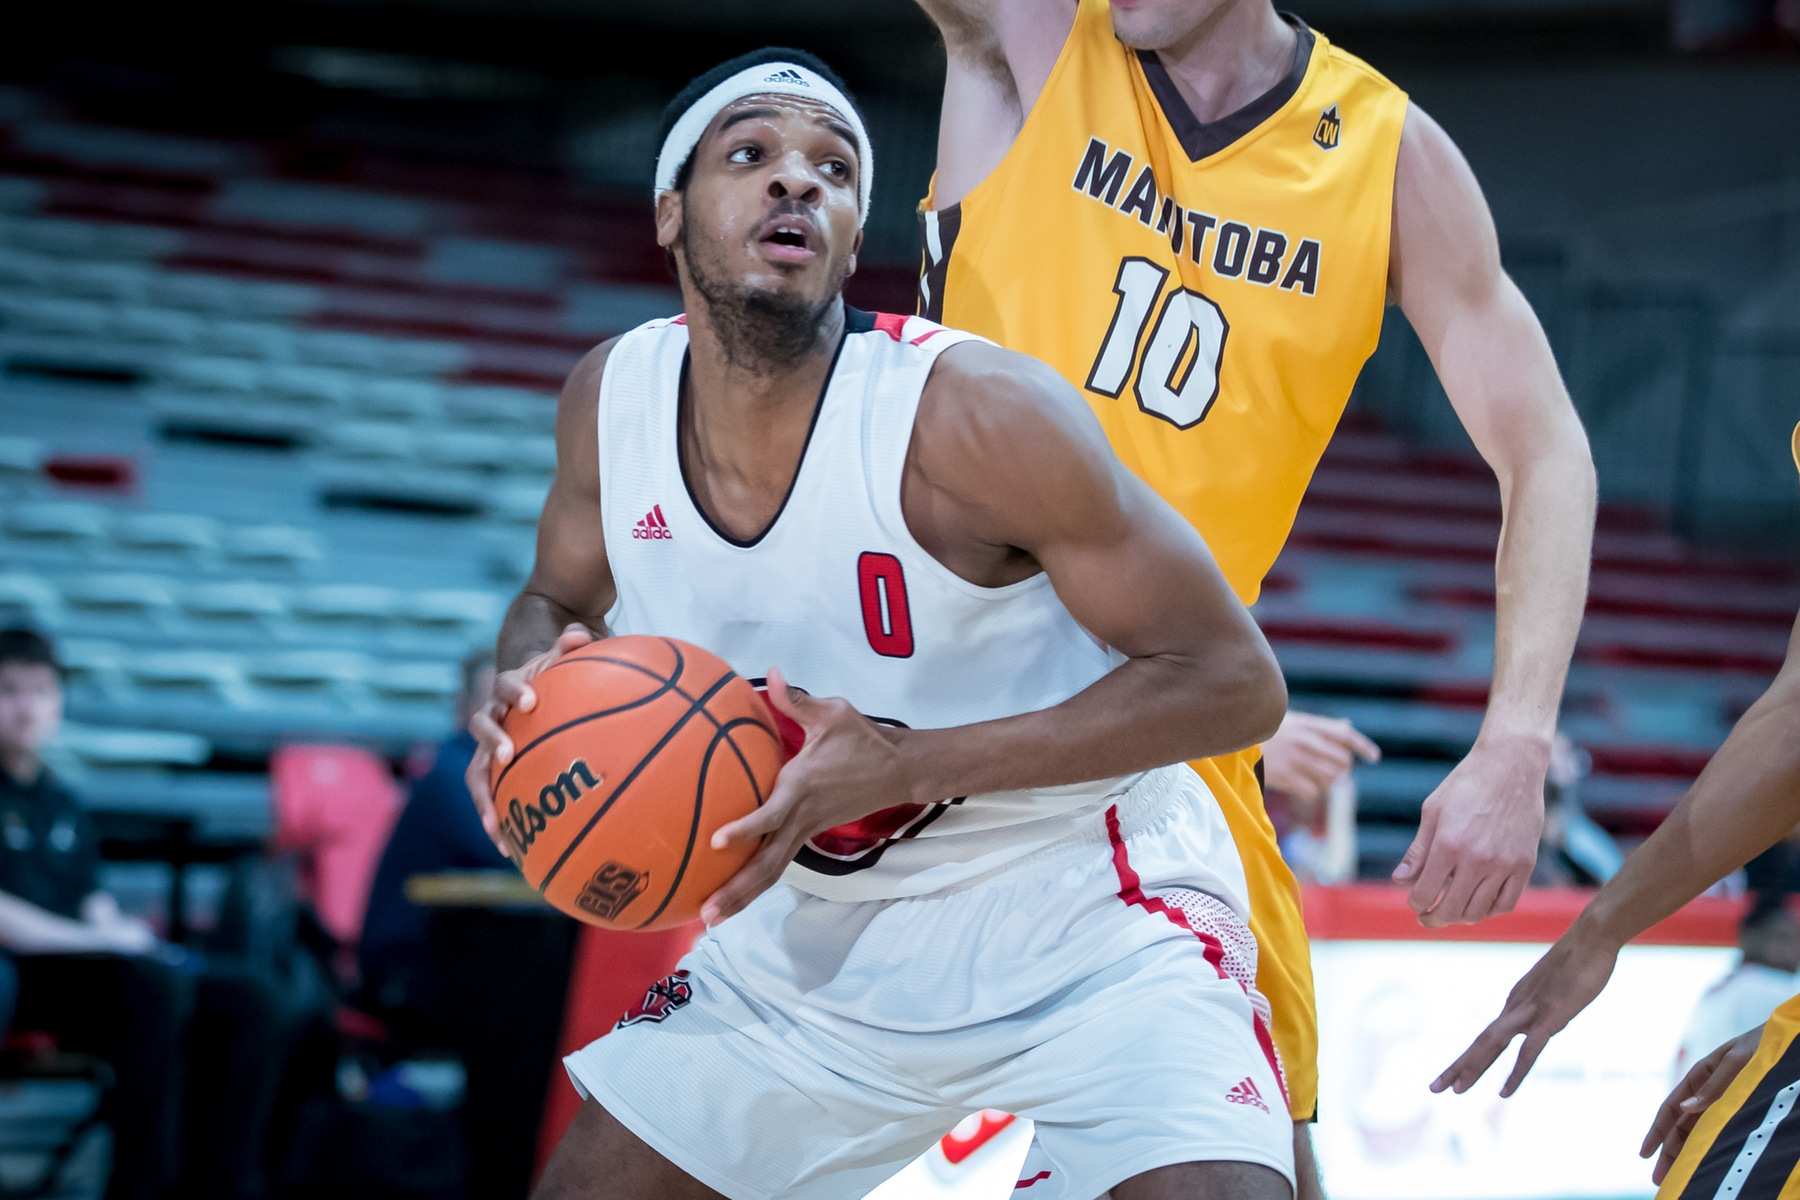 Sean Tarver had a double-double Saturday night as the Wesmen defeated the Mayville State Comets. (Kelly Morton/Wesmen Athletics file)